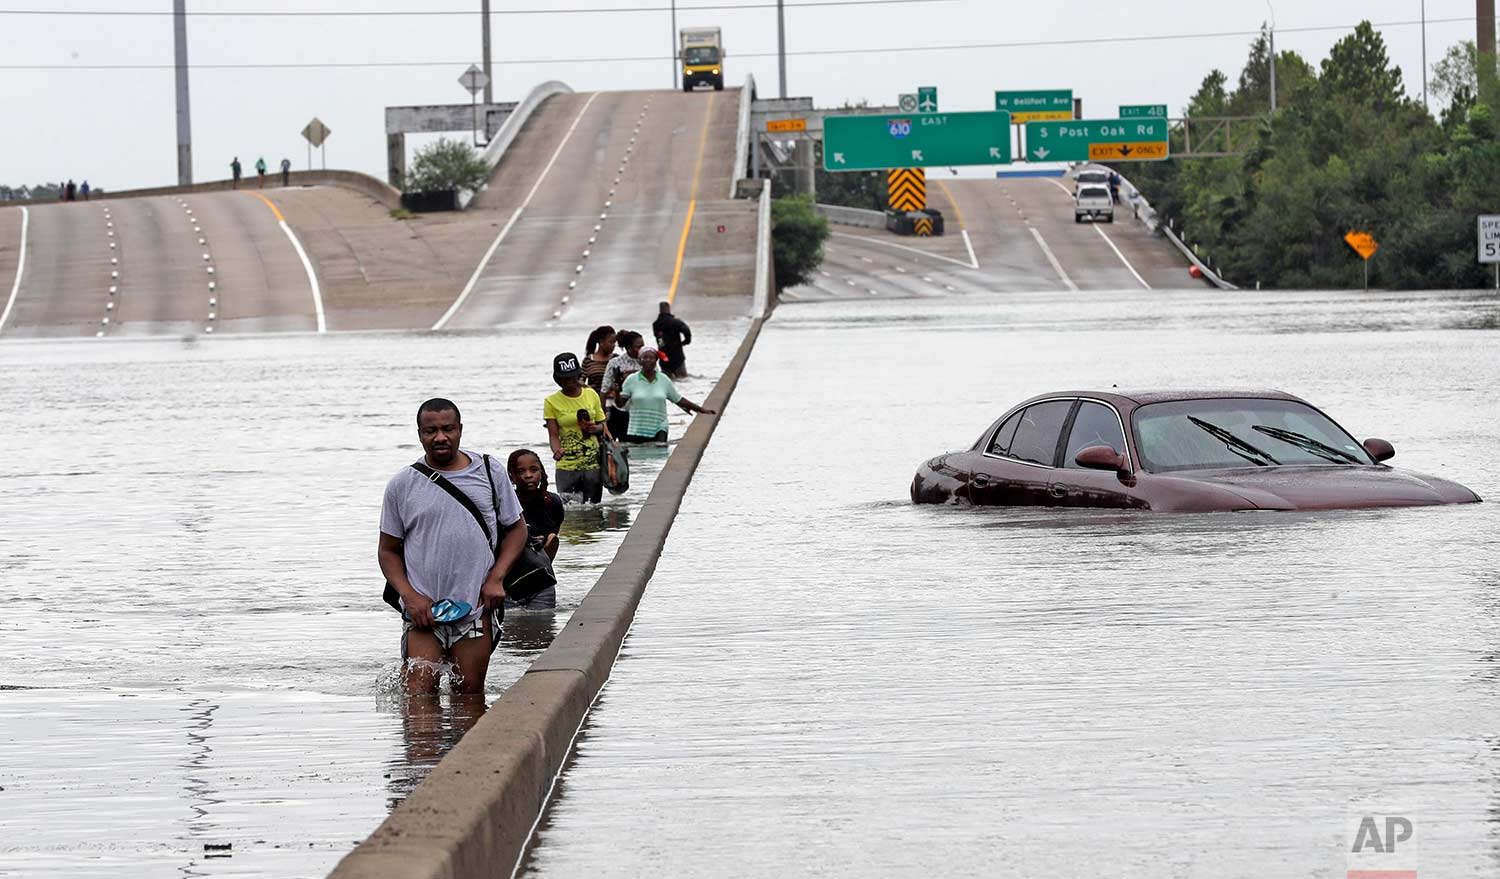 Evacuees wade down a flooded section of Interstate 610 as floodwaters from Tropical Storm Harvey rise Sunday, Aug. 27, 2017, in Houston. (AP Photo/David J. Phillip)